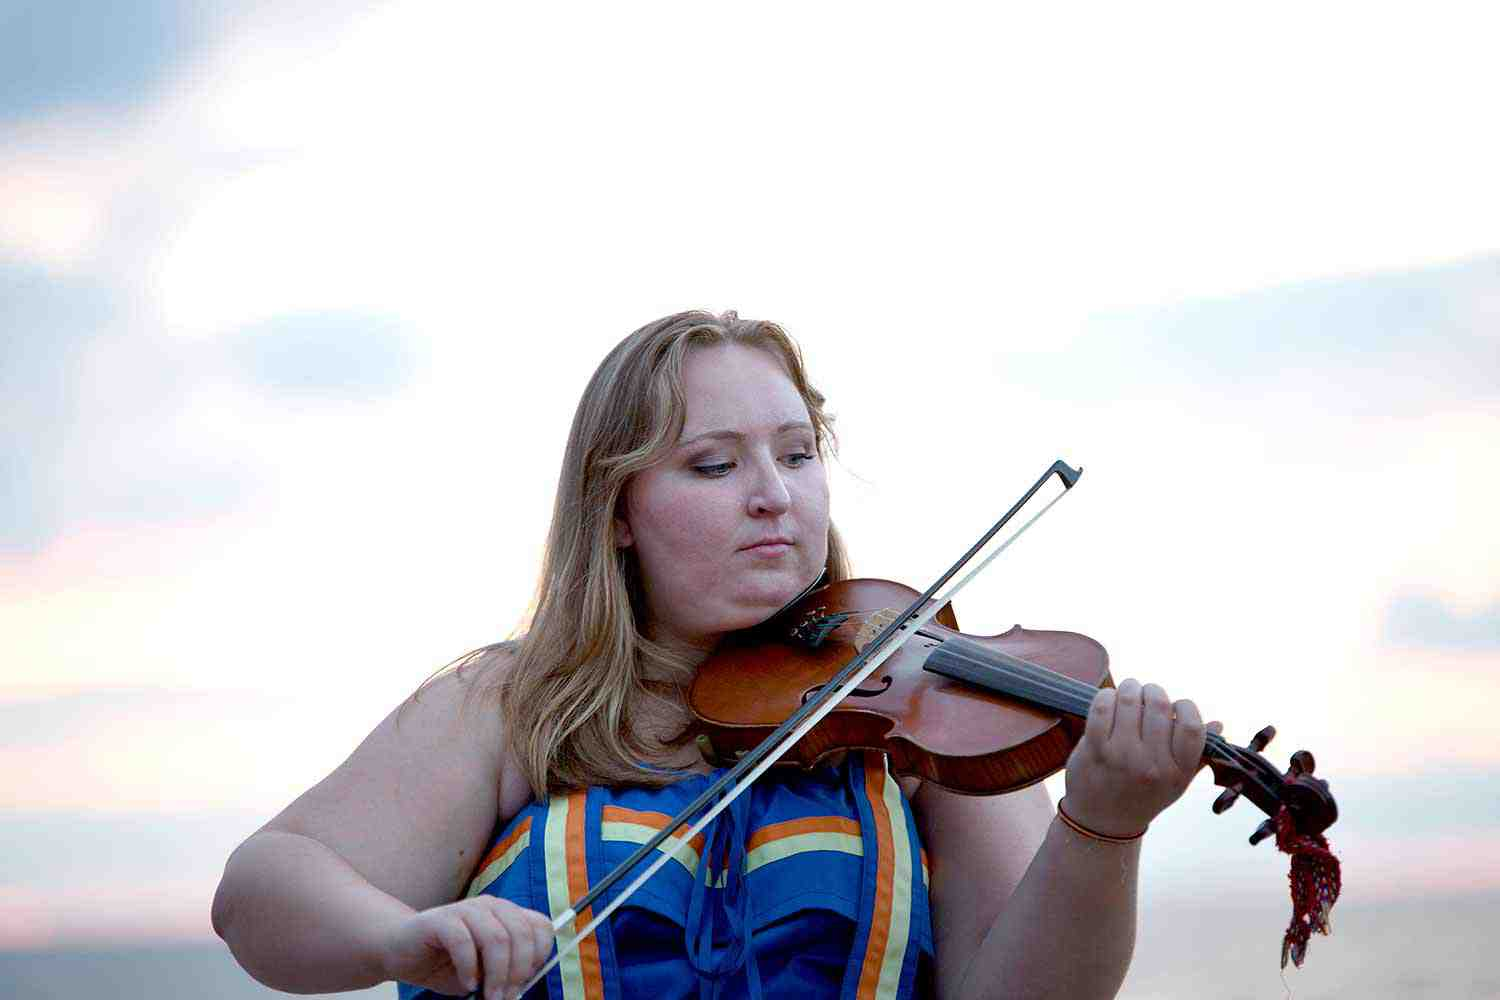 Métis Nation of Ontario woman playing the fiddle